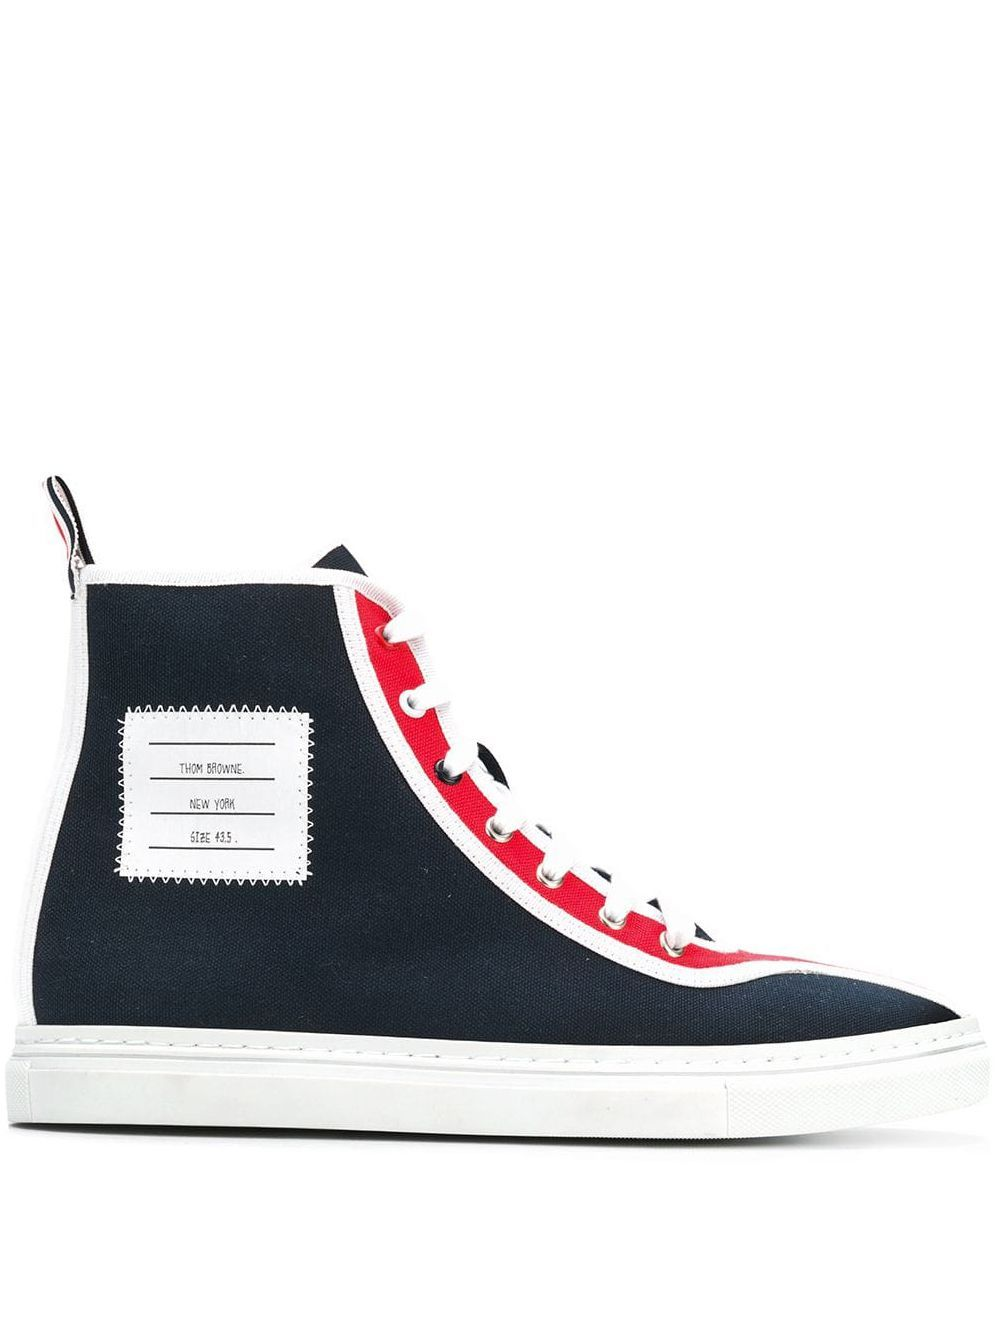 Thom Browne 4 Bar Paper Label Hi Top Trainer Farfetch Shoes Fashion Photography Casual Sneakers Nice Shoes